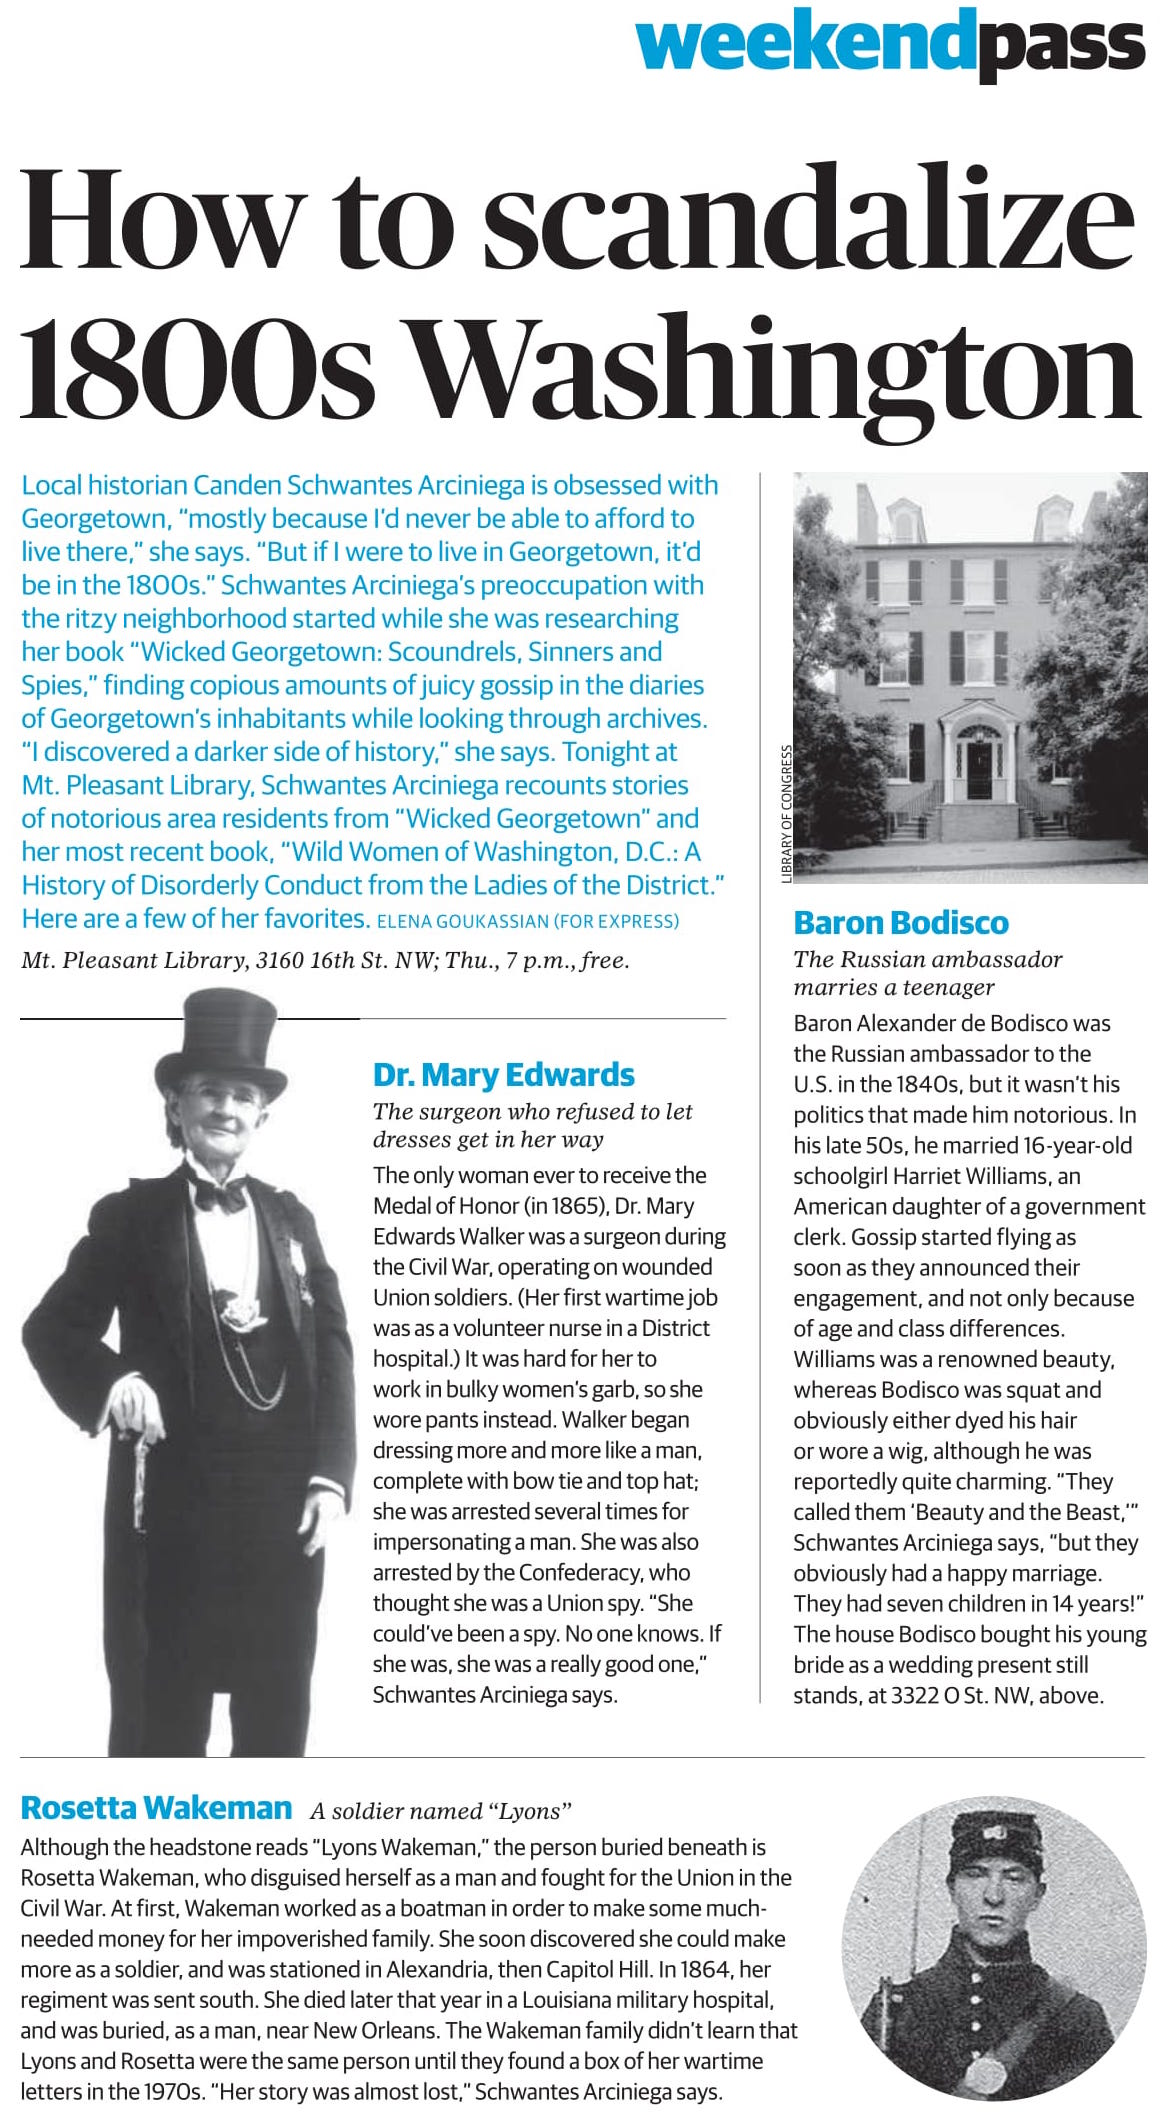 https://www.washingtonpost.com/express/wp/2015/07/23/meet-some-notorious-washingtonians-from-the-19th-century